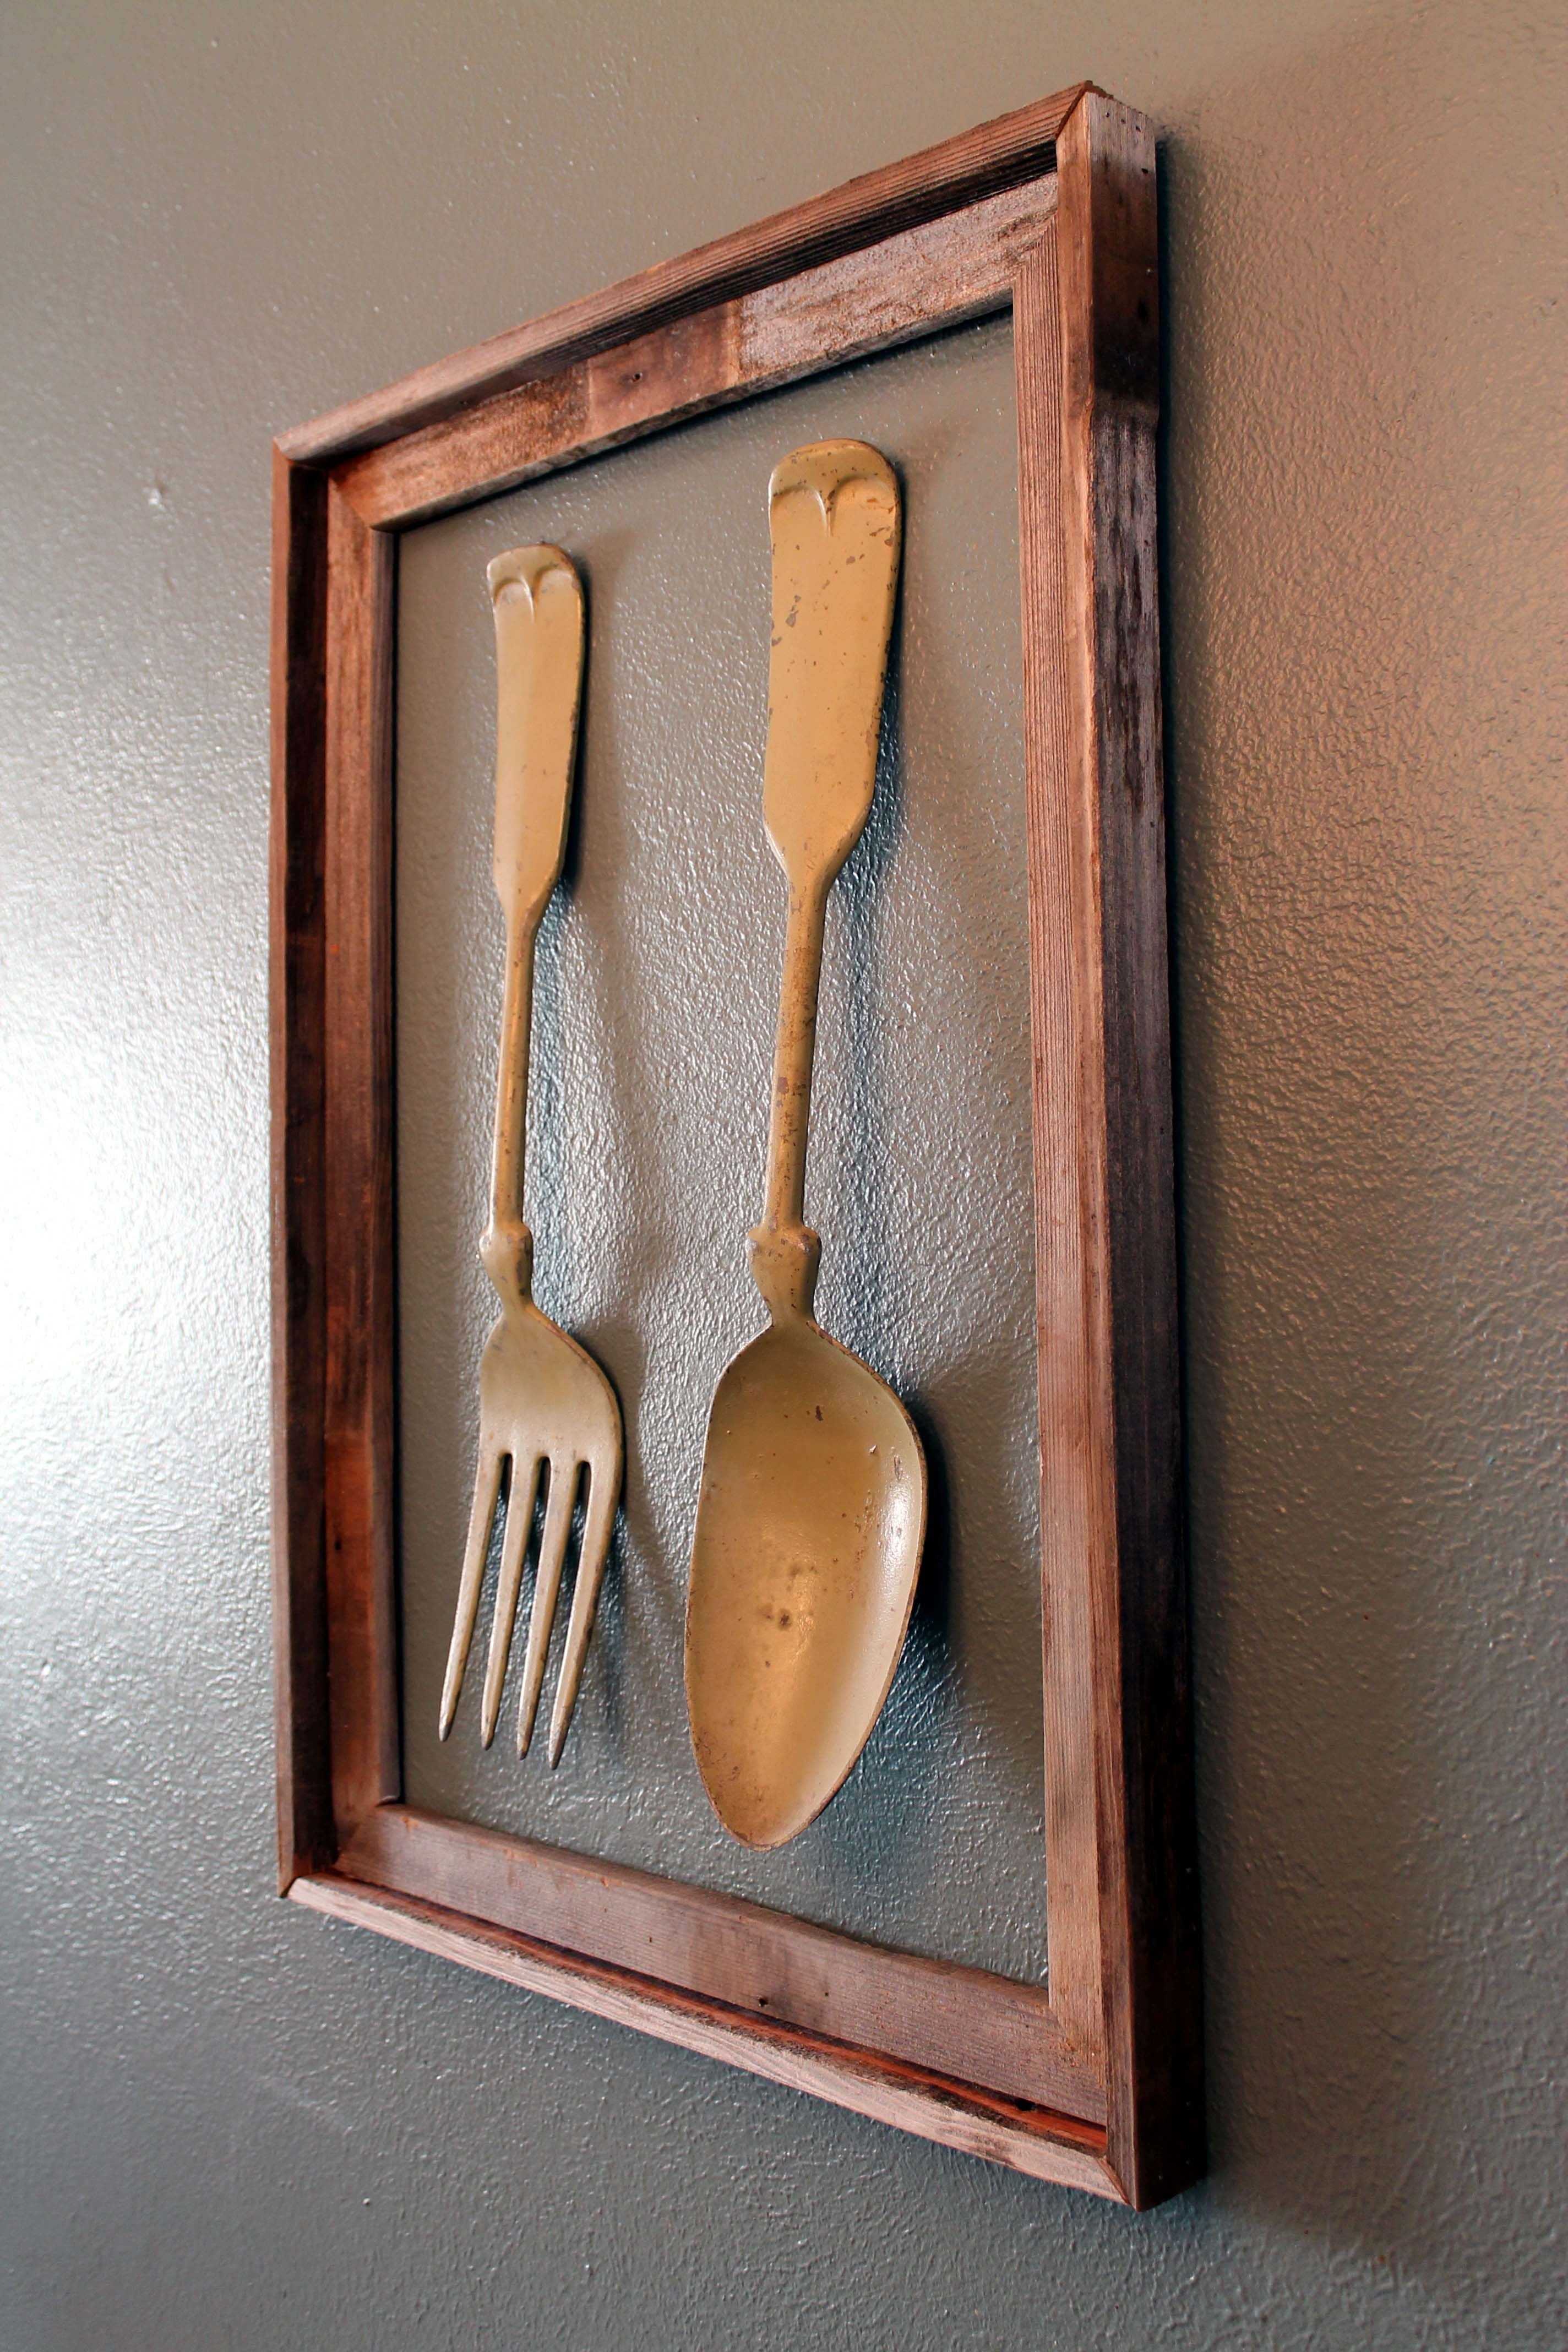 Fork And Spoon Fence Post Wall Art | Snugasabugbaby For Most Recent Fork And Spoon Wall Art (Gallery 3 of 20)